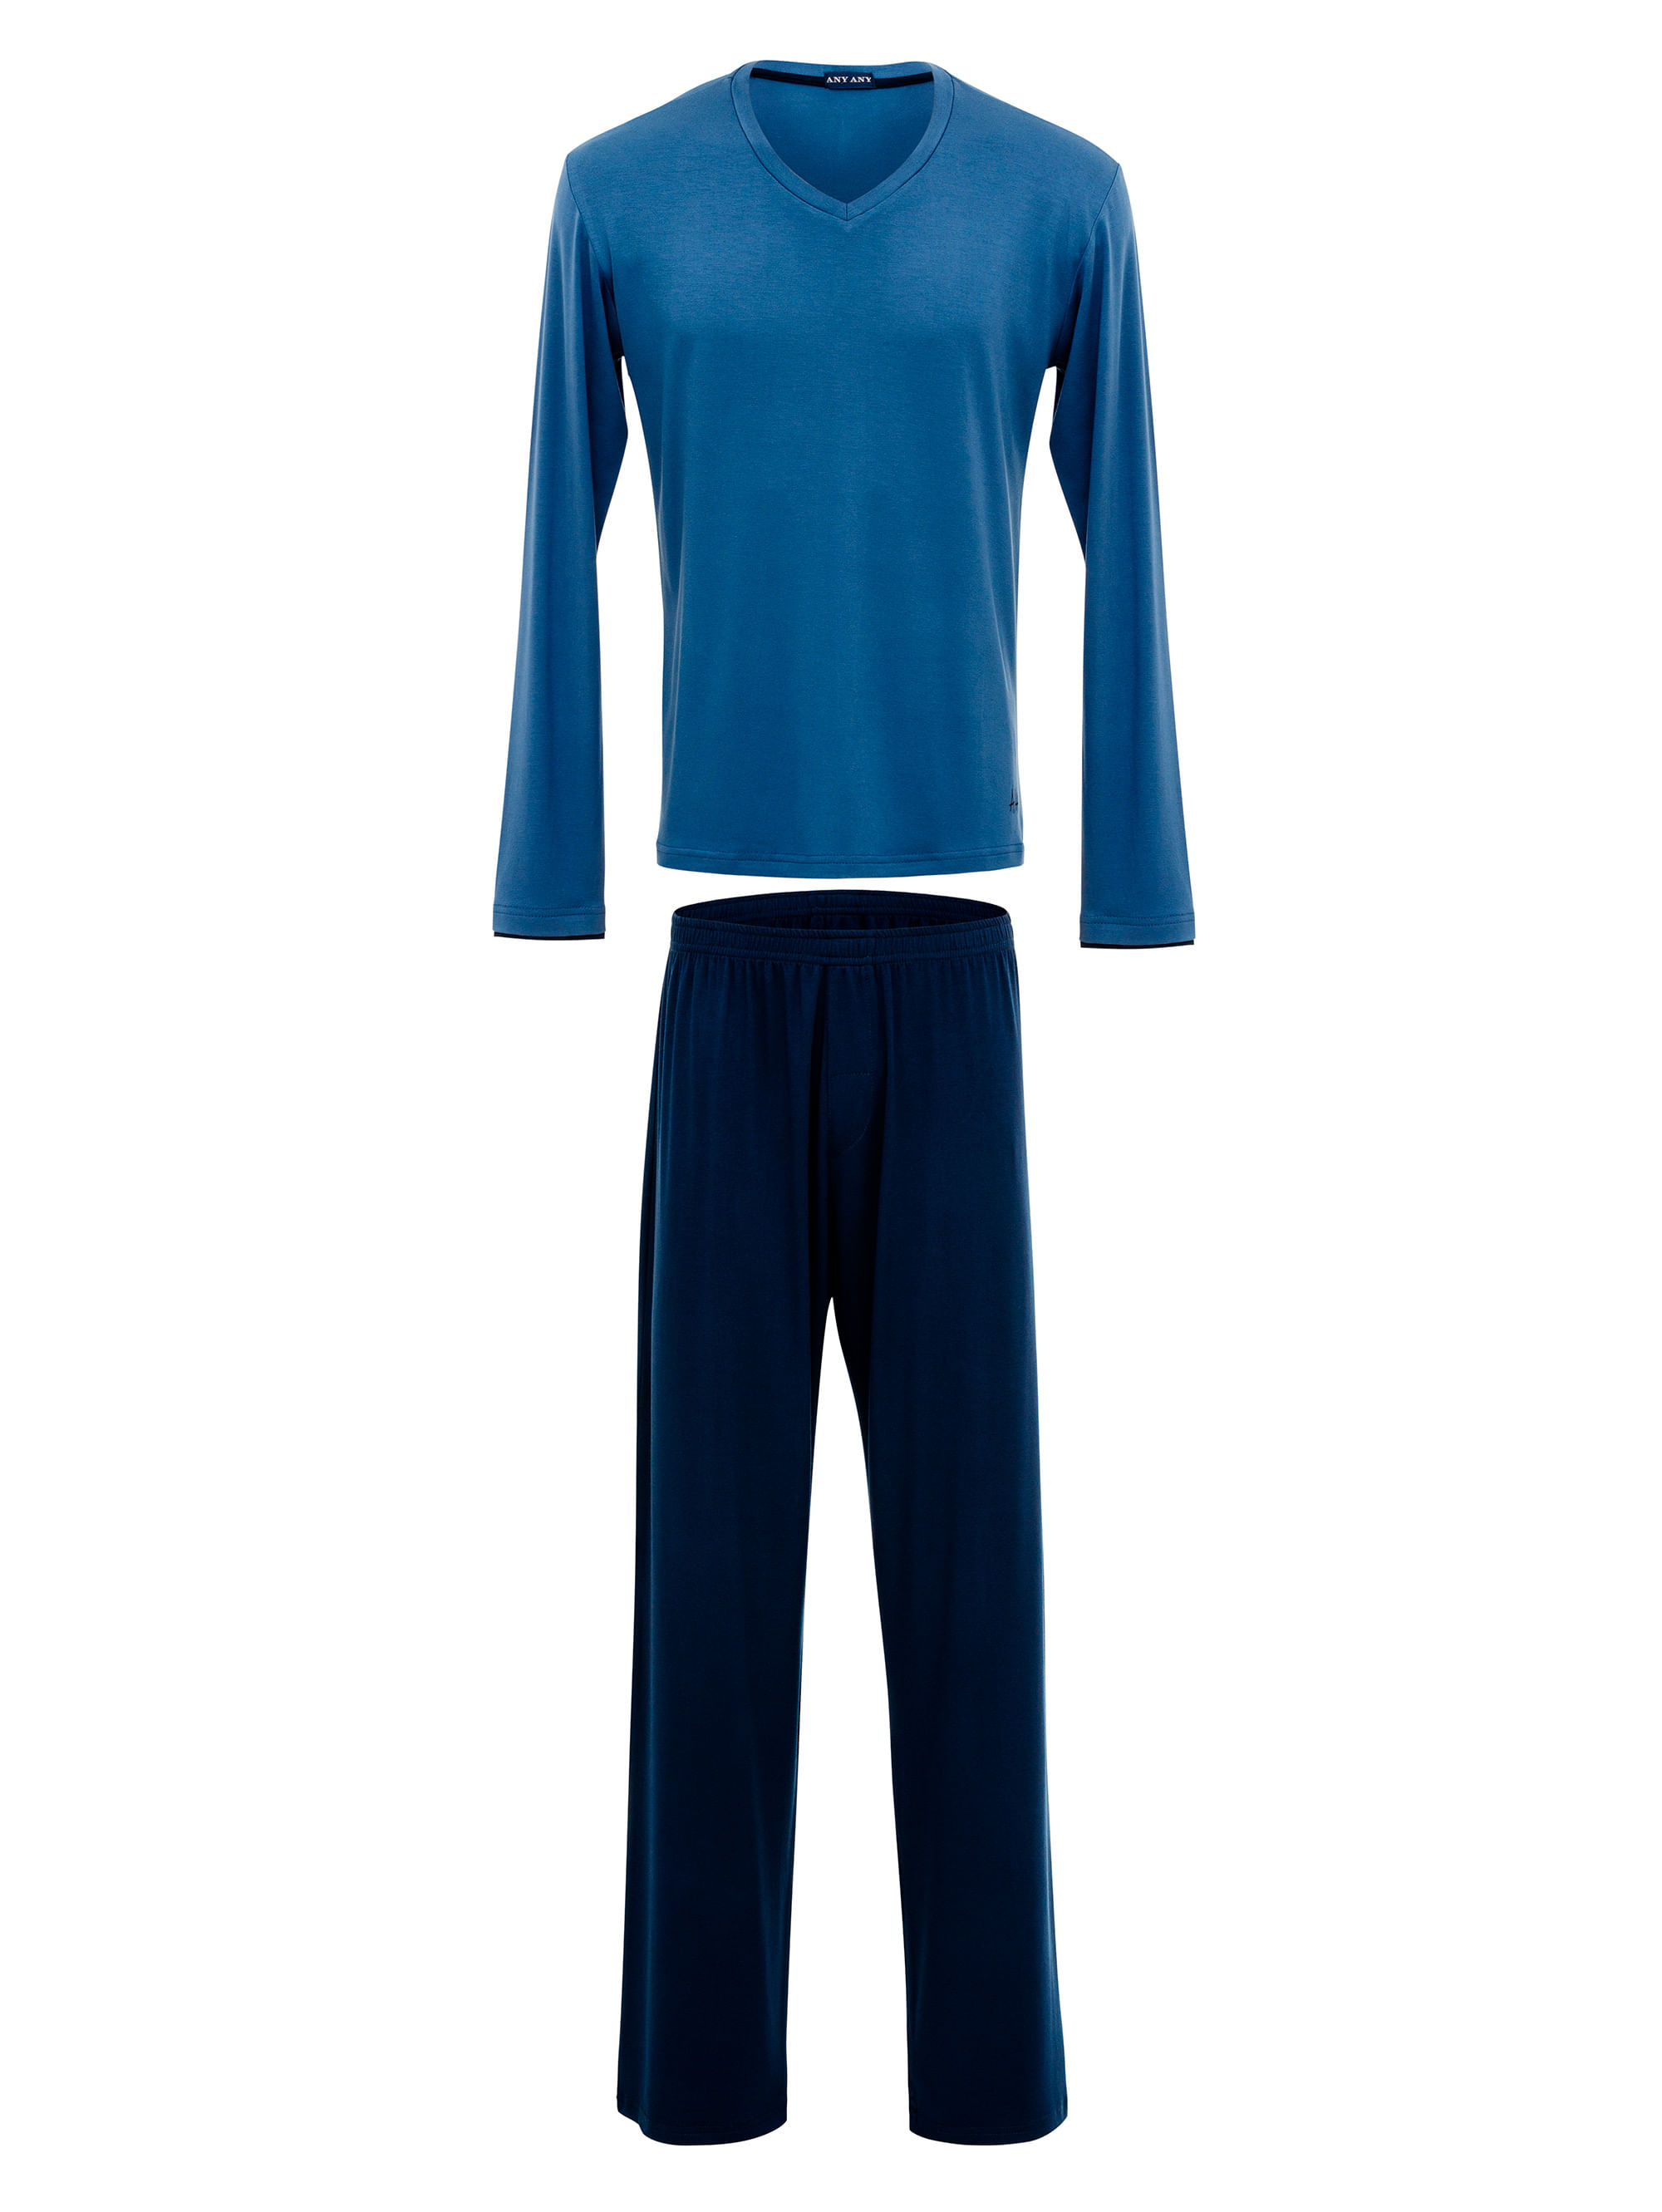 PIJAMA-MASCULINO-OUTLET-THEO_04011332_FRENTE